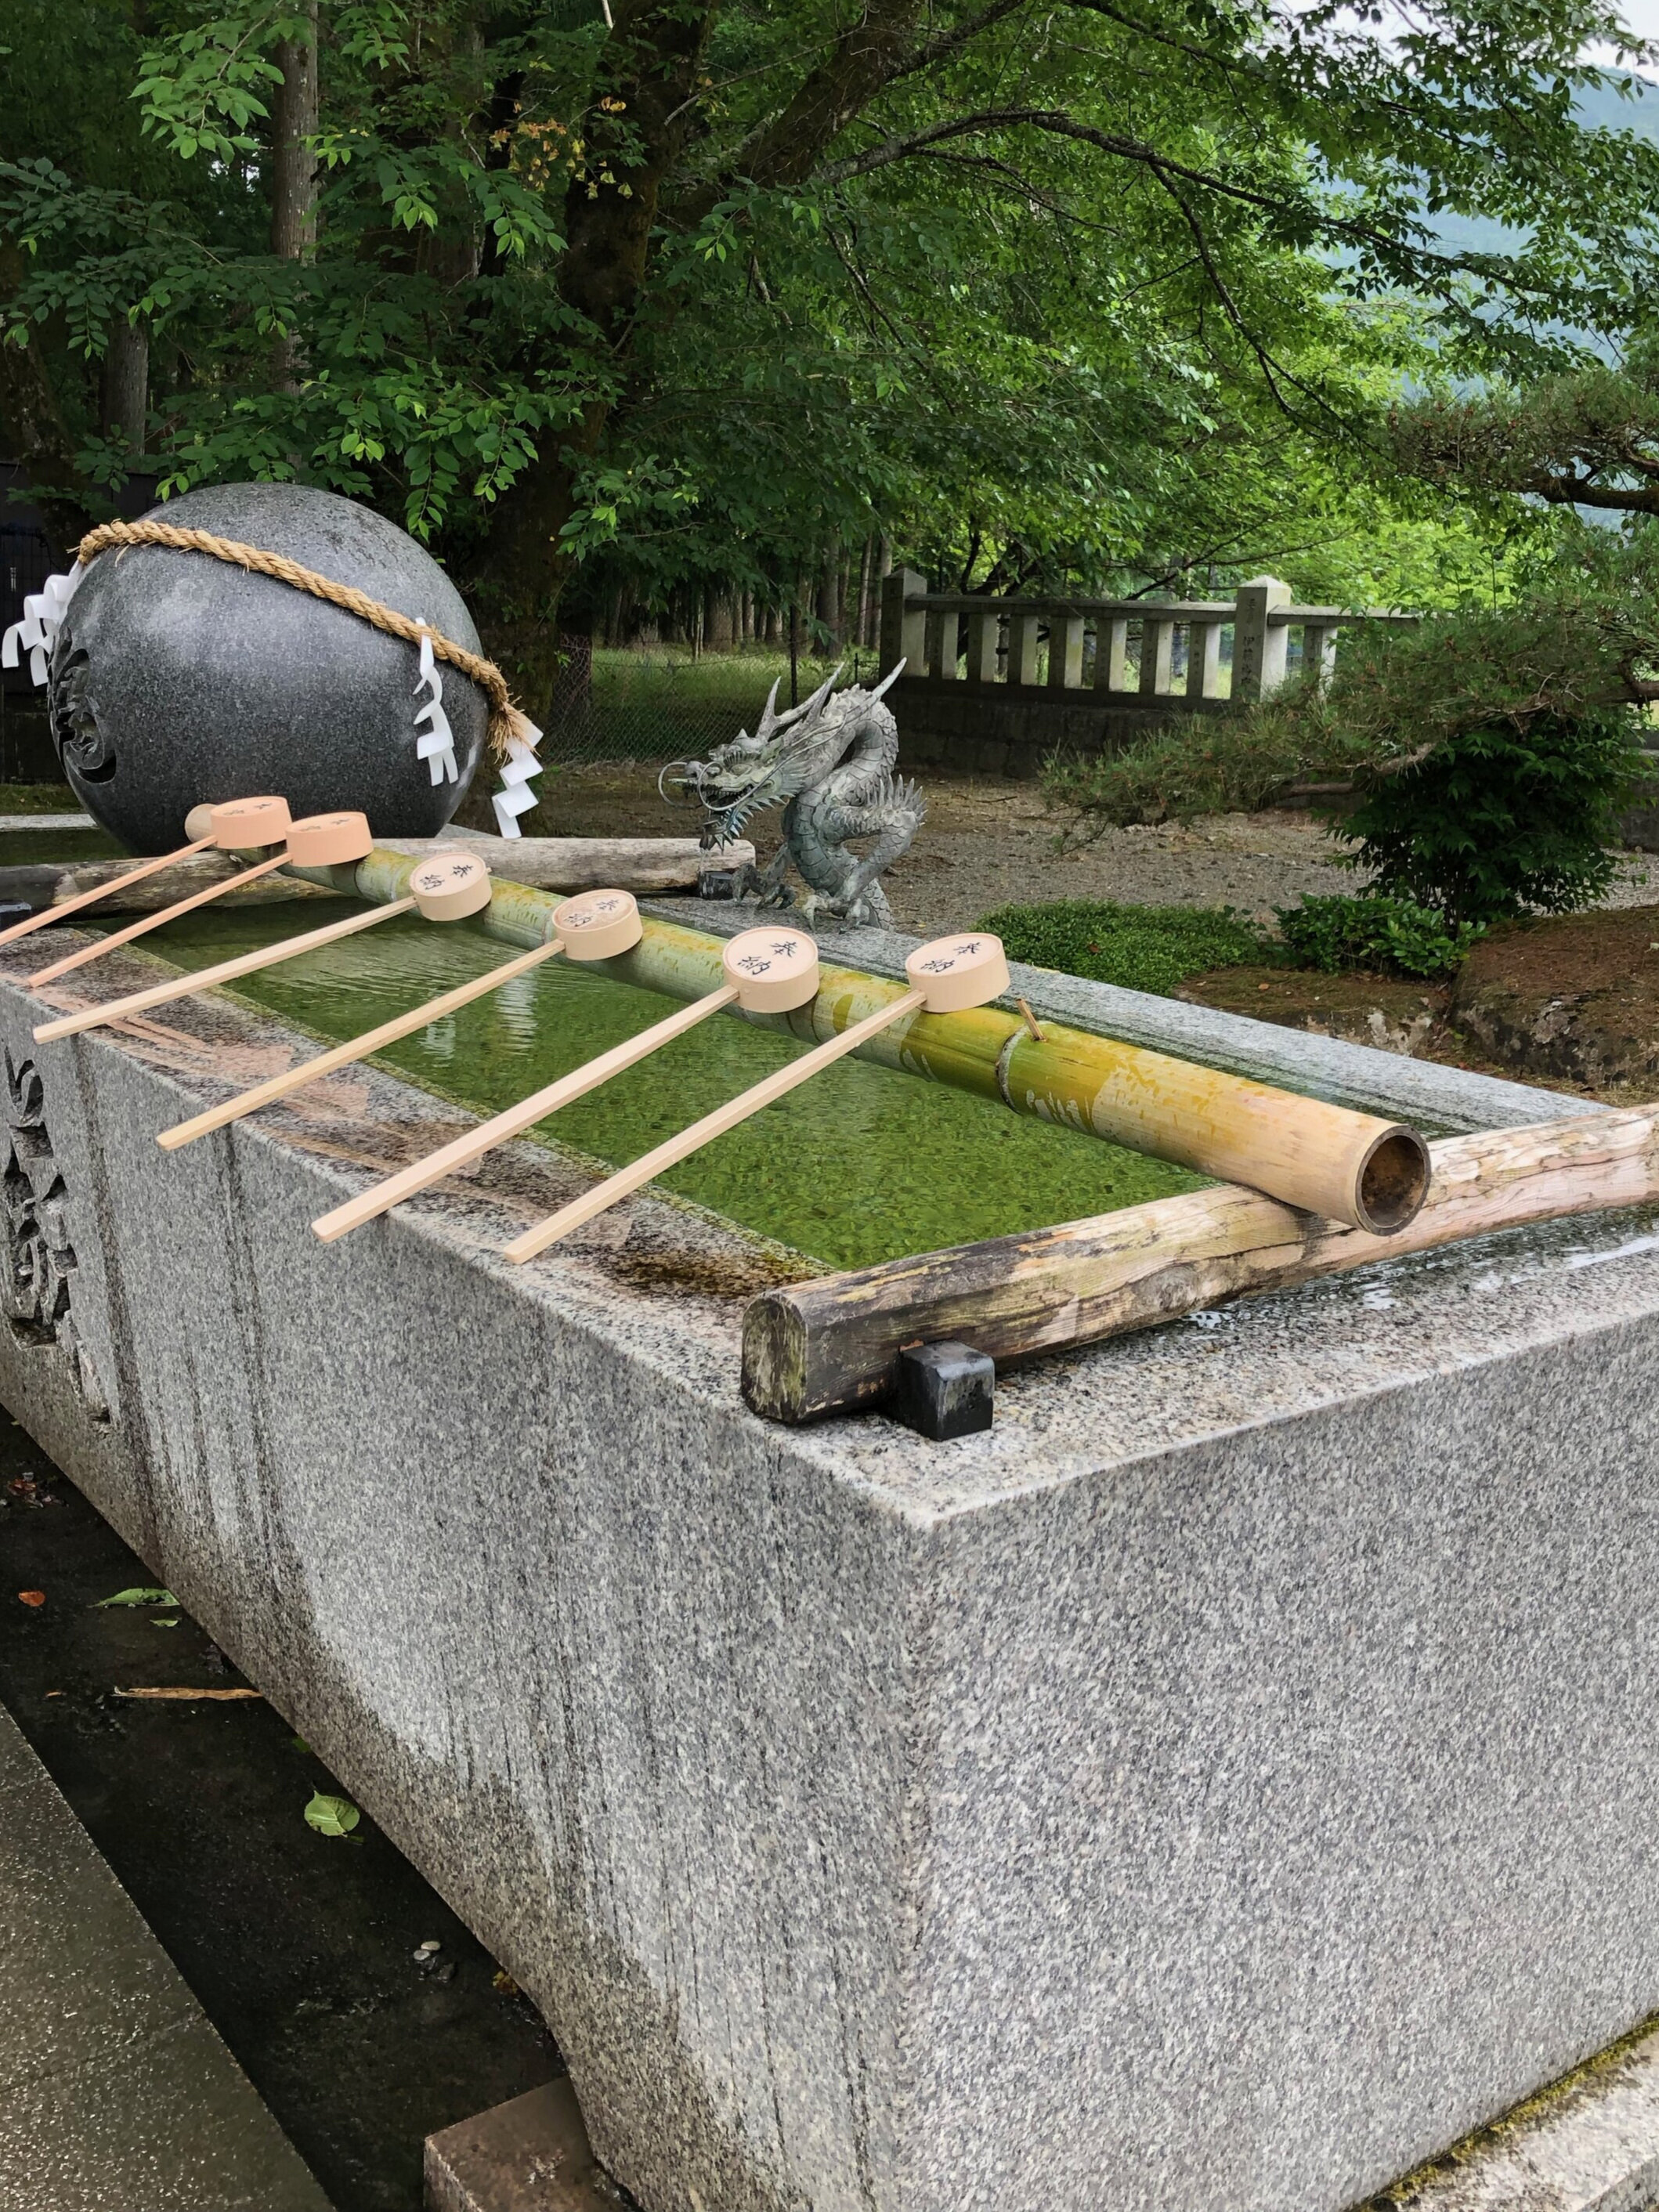 Temizu—bow first, then using the scoop, pour water over the left hand, then, right, and finally water to the mouth. Make sure the waste water falls in the trough below. Purification before entering…do this  every  time you enter. Purification demands repetition. It is never finished.